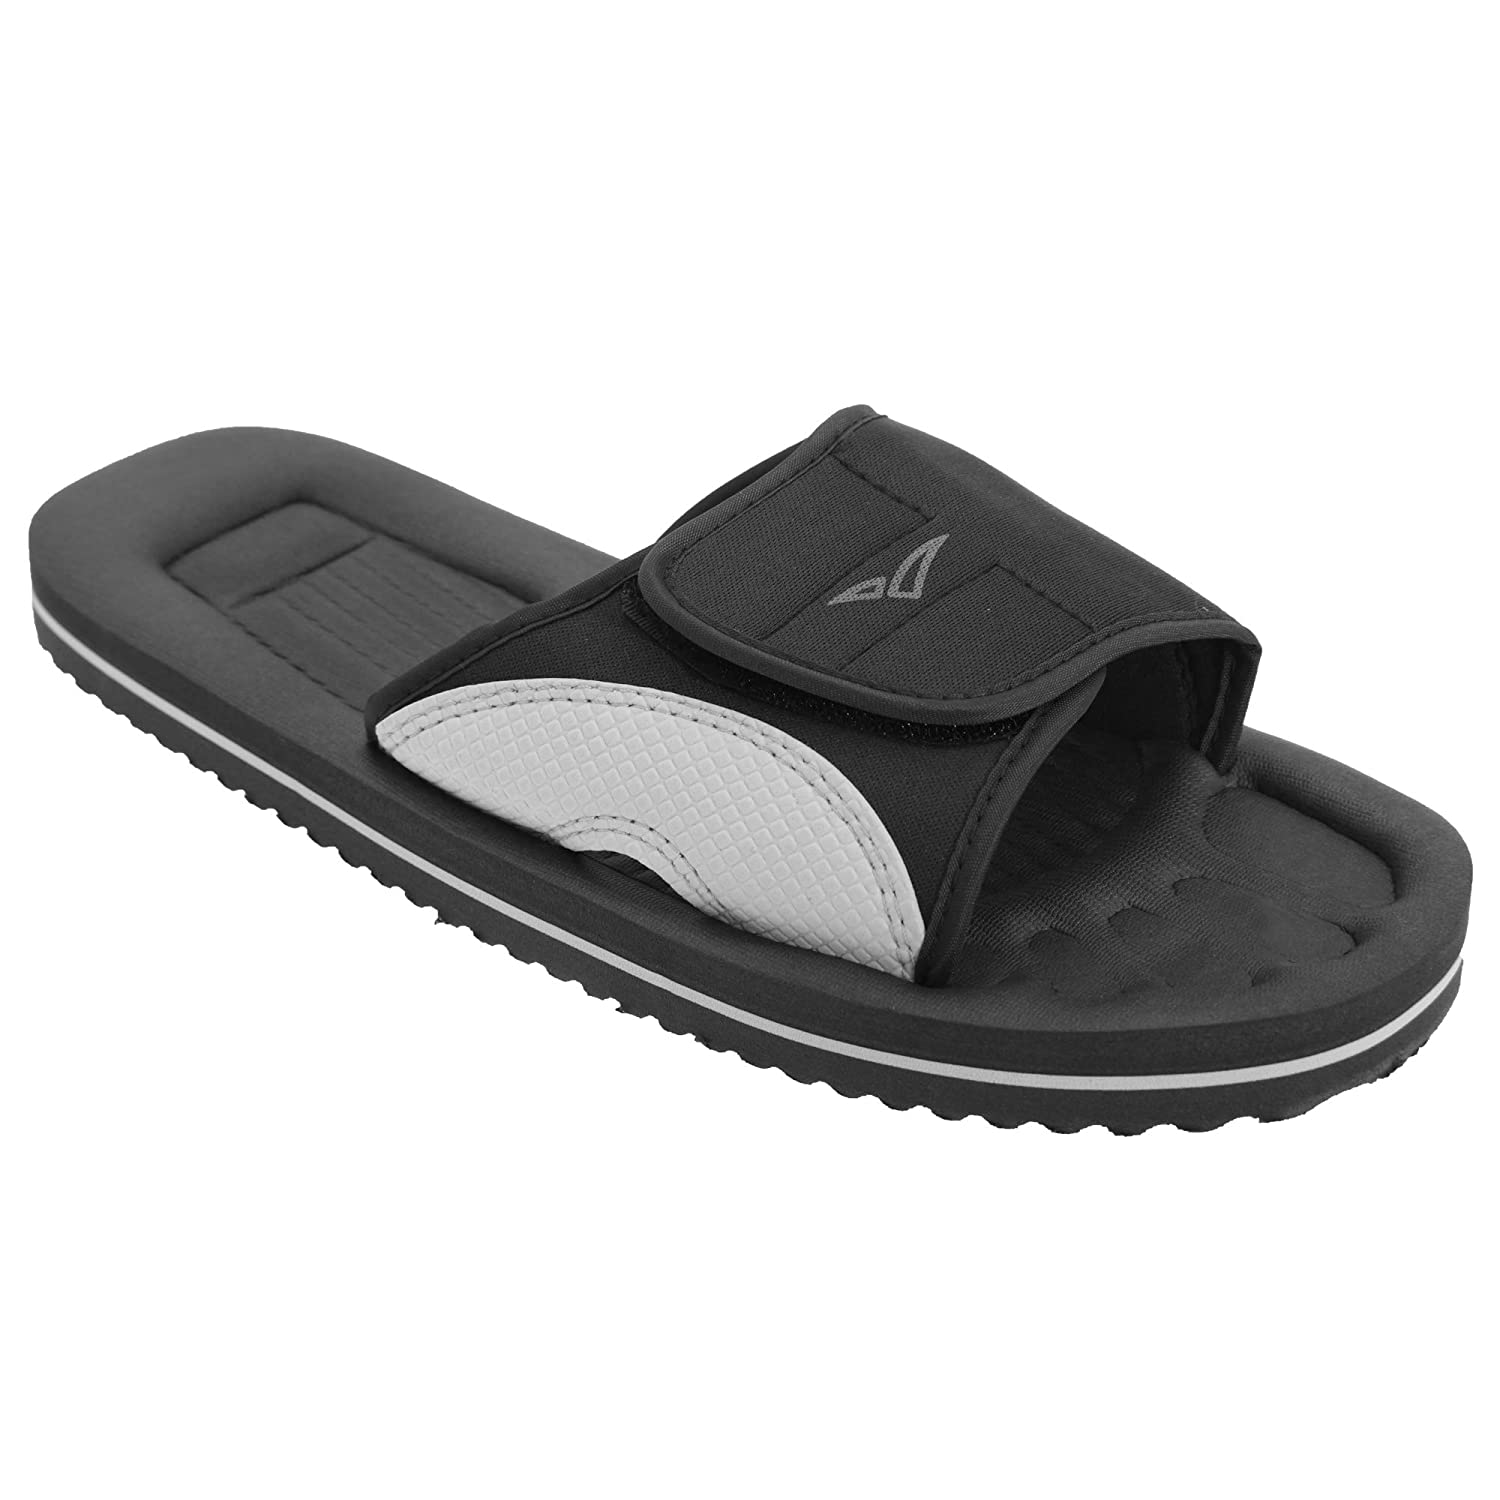 43 EUR Black//Grey PDQ Mens Surfer Touch Fastening Beach Mule Pool Shoes